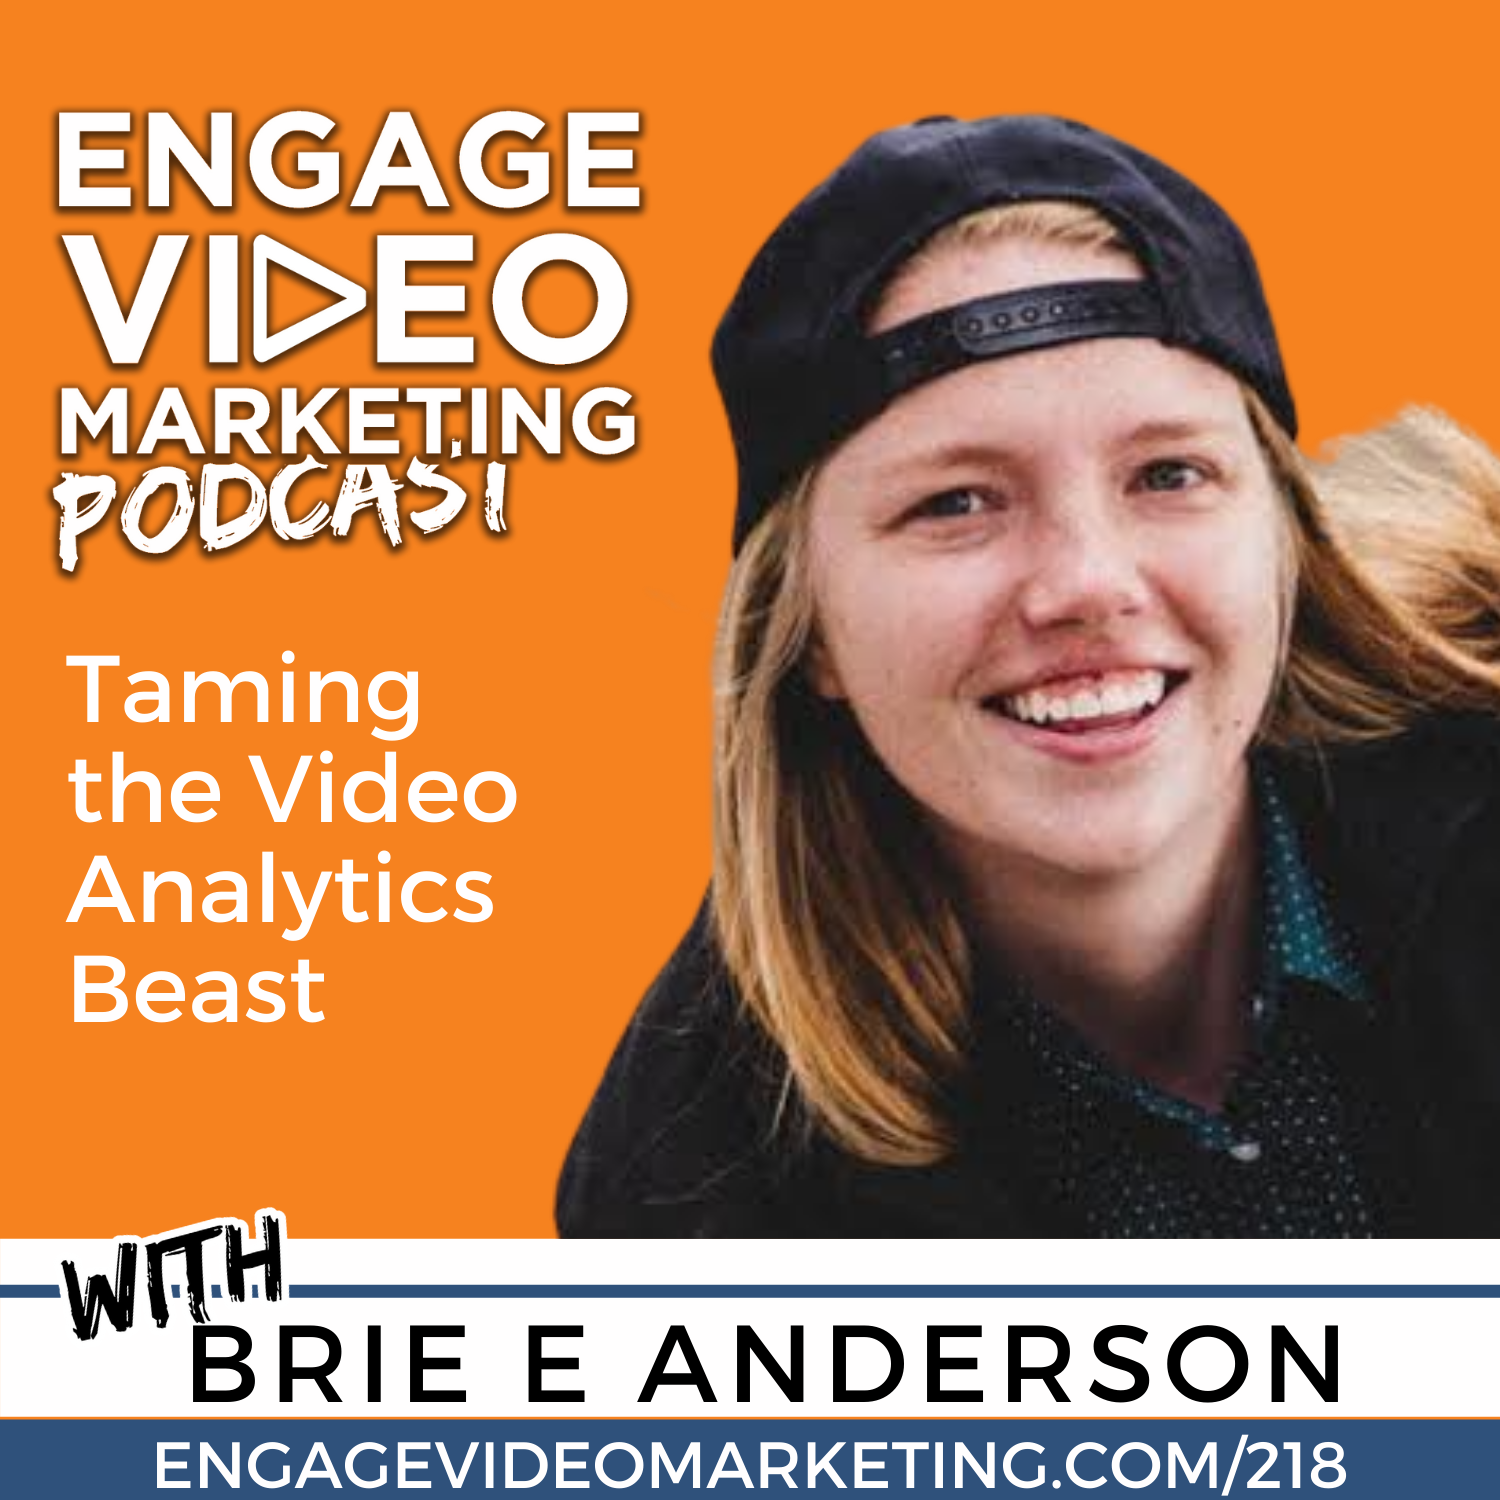 Taming the Video Analytics Beast with Brie E Anderson